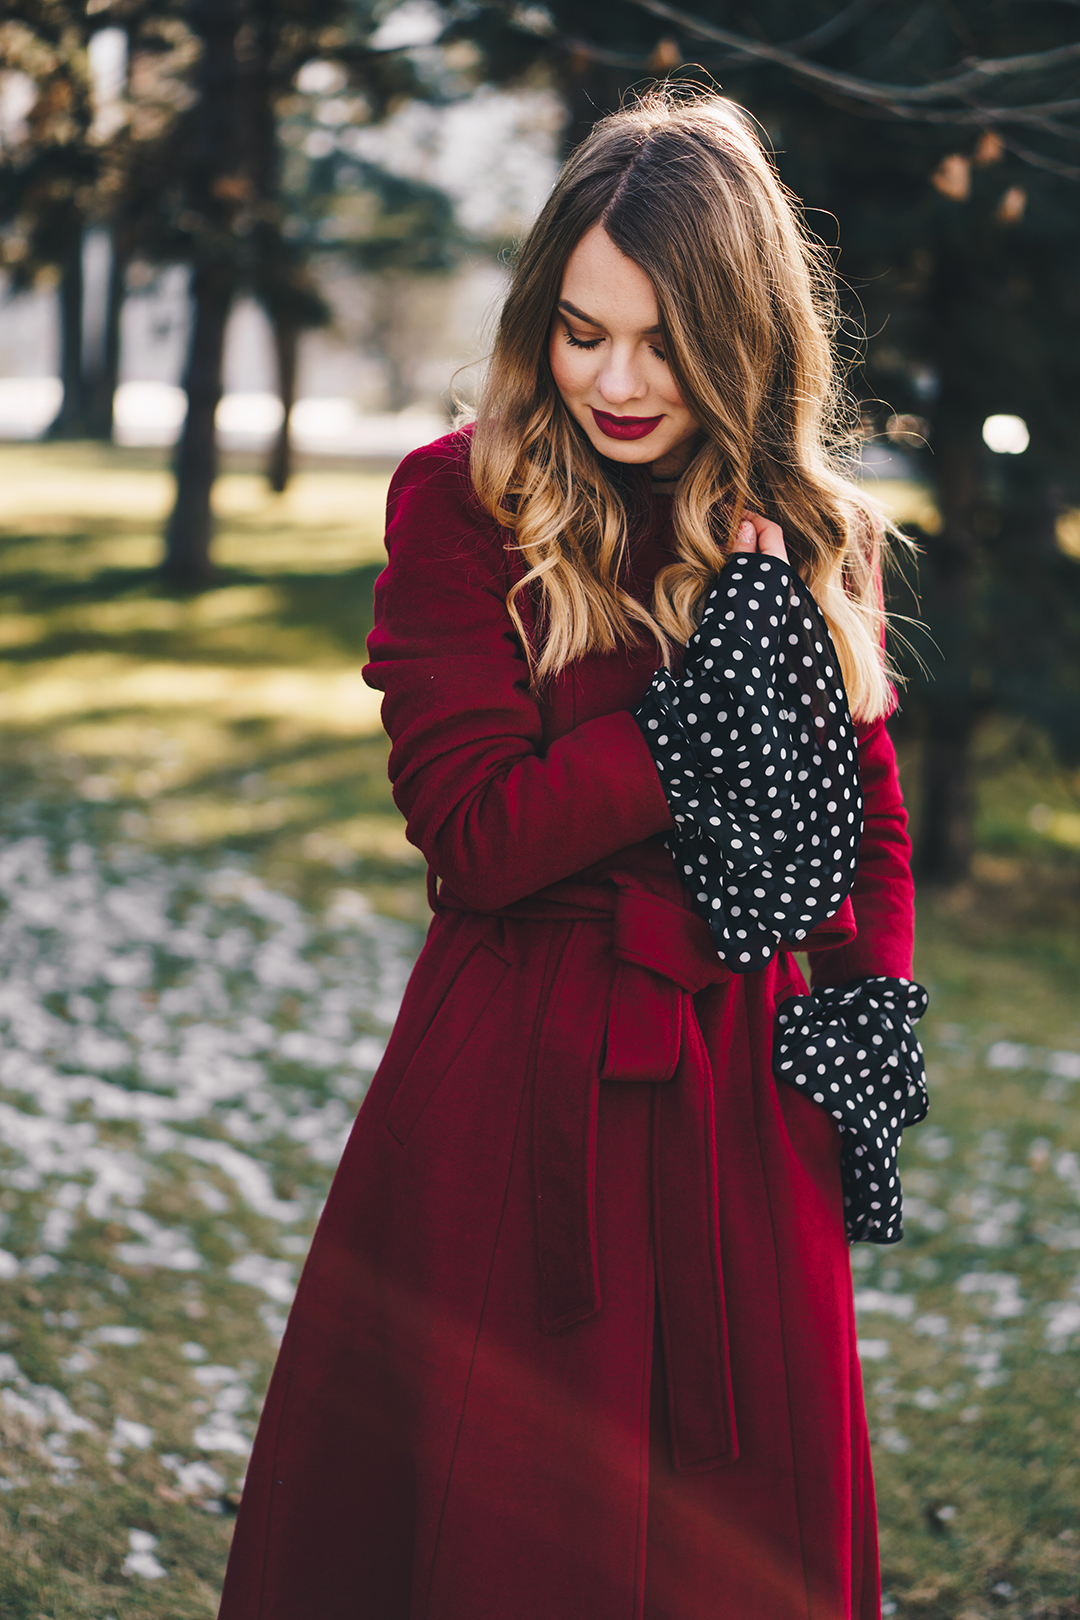 red-wool-coat-polka-dots-bell-sleeves-blouse-winter-outfit-7